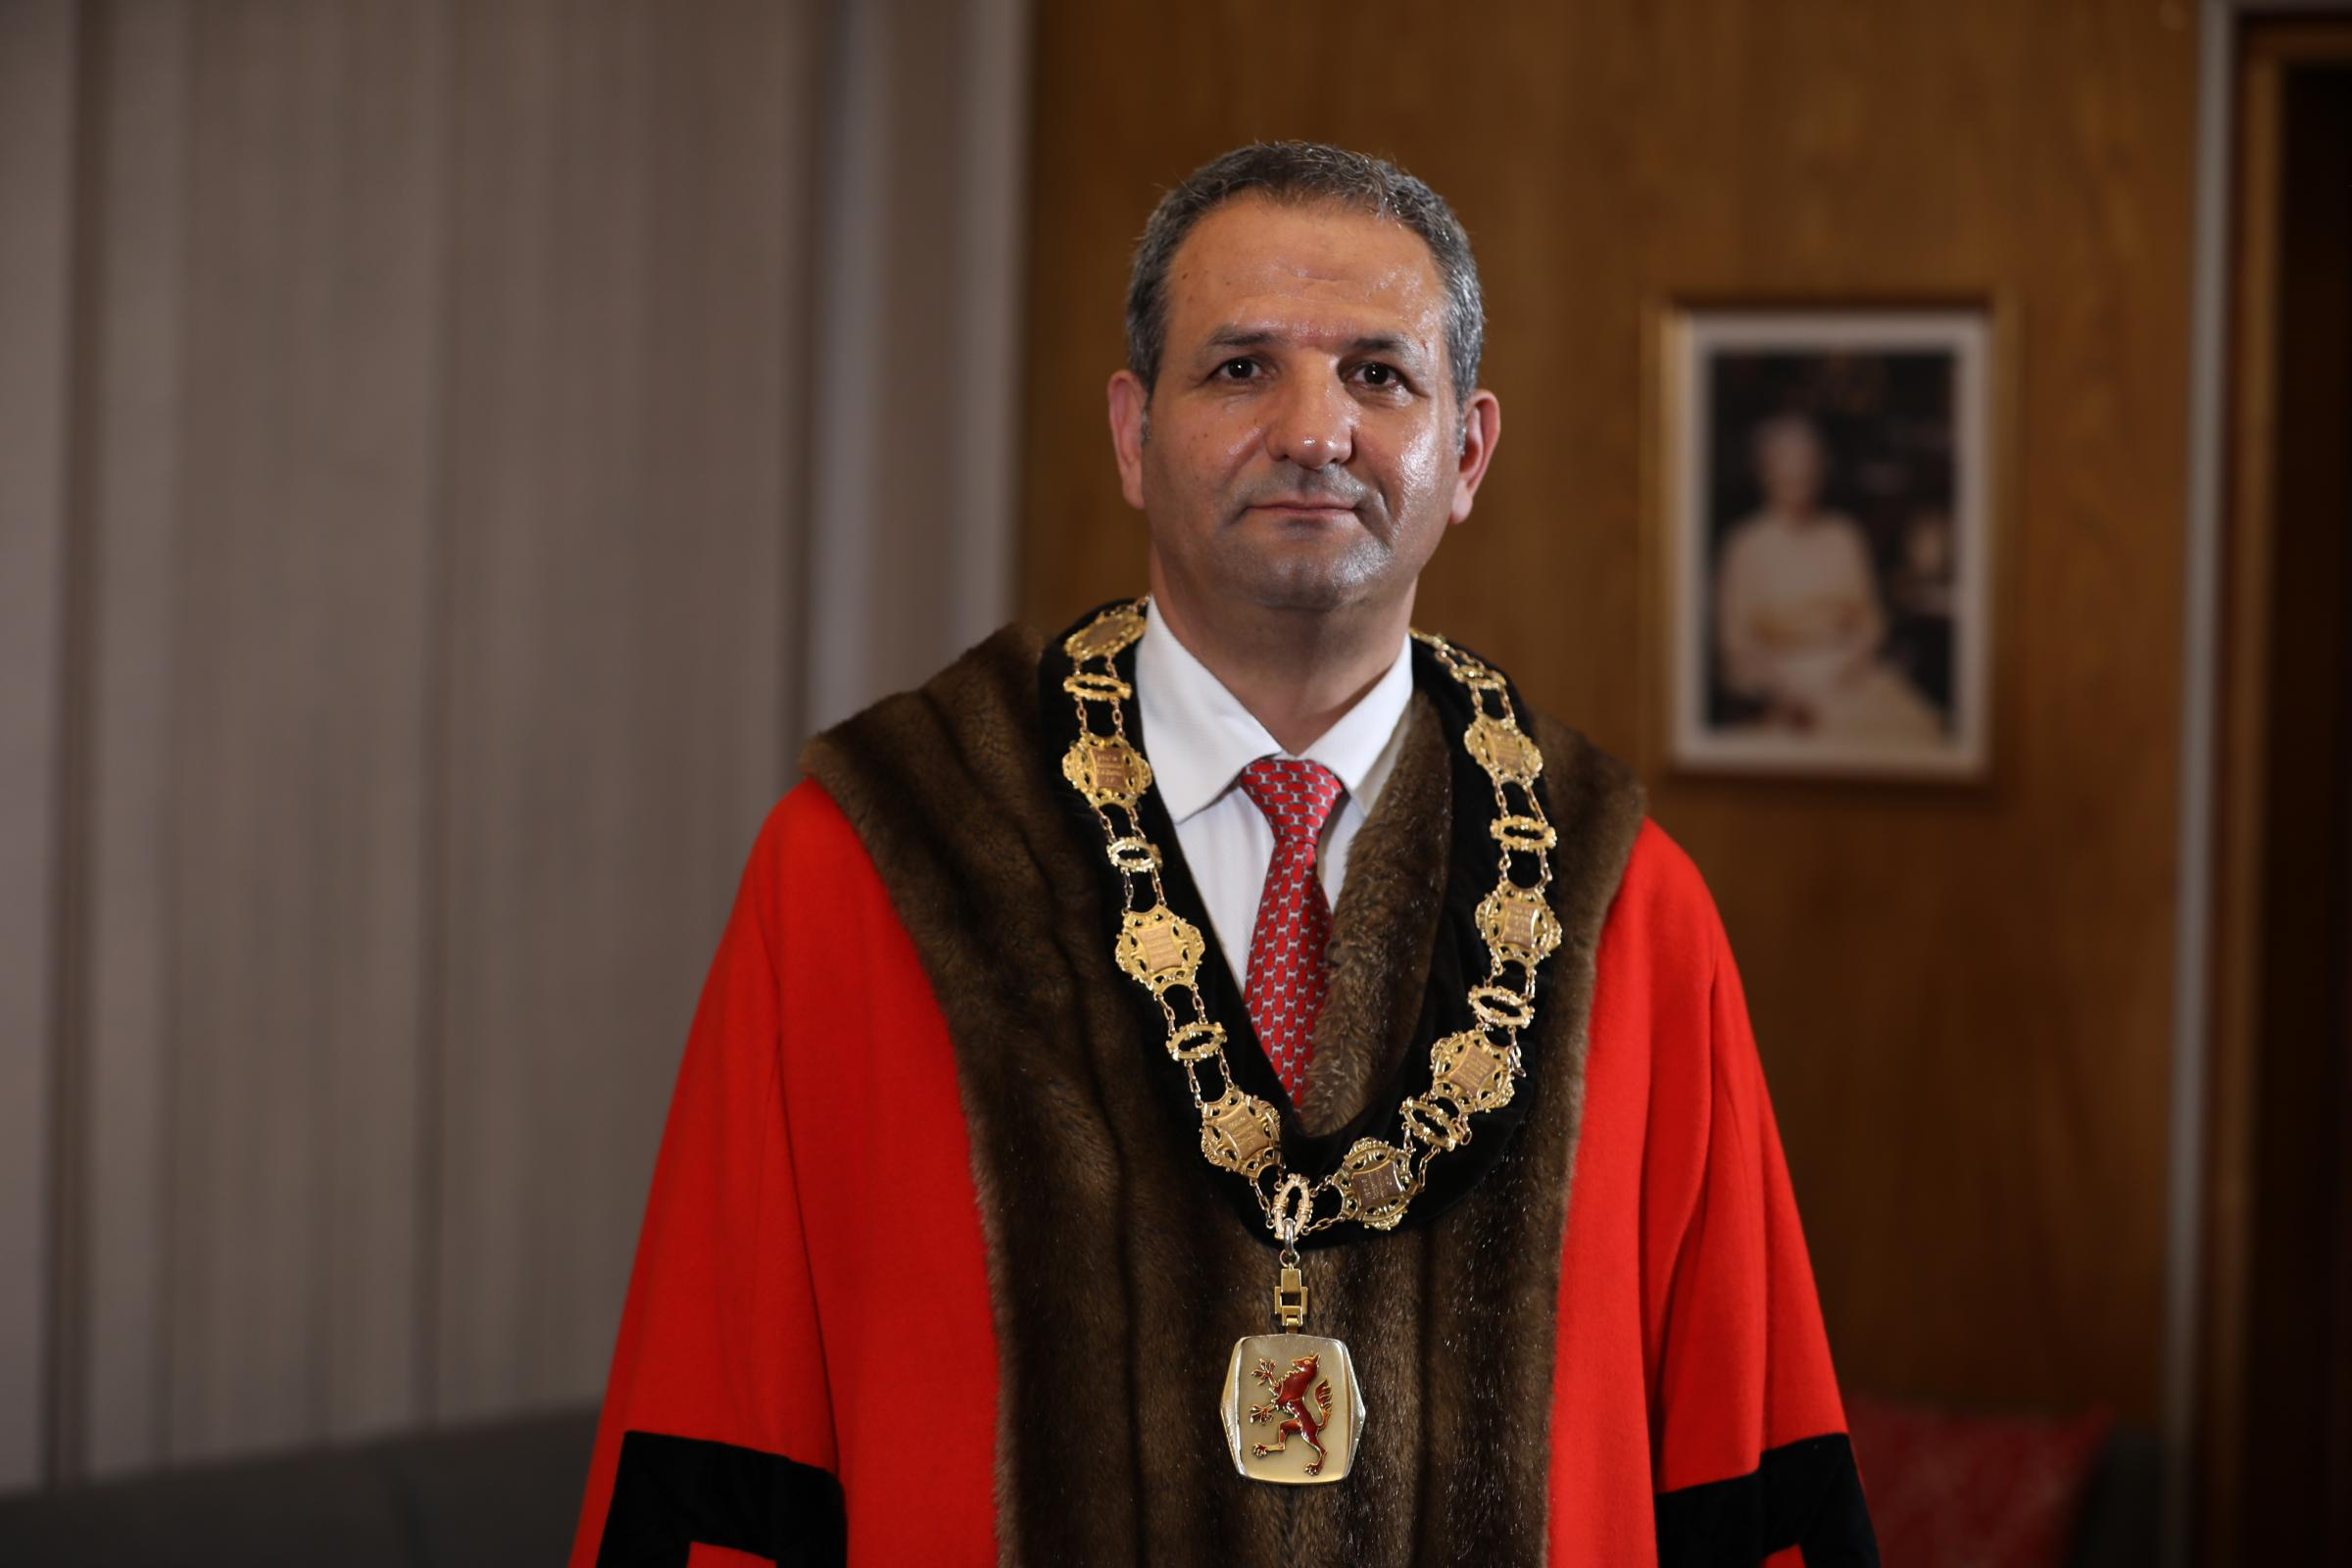 Enfield mayor offered factory to help in coronavirus crisis | Enfield  Independent